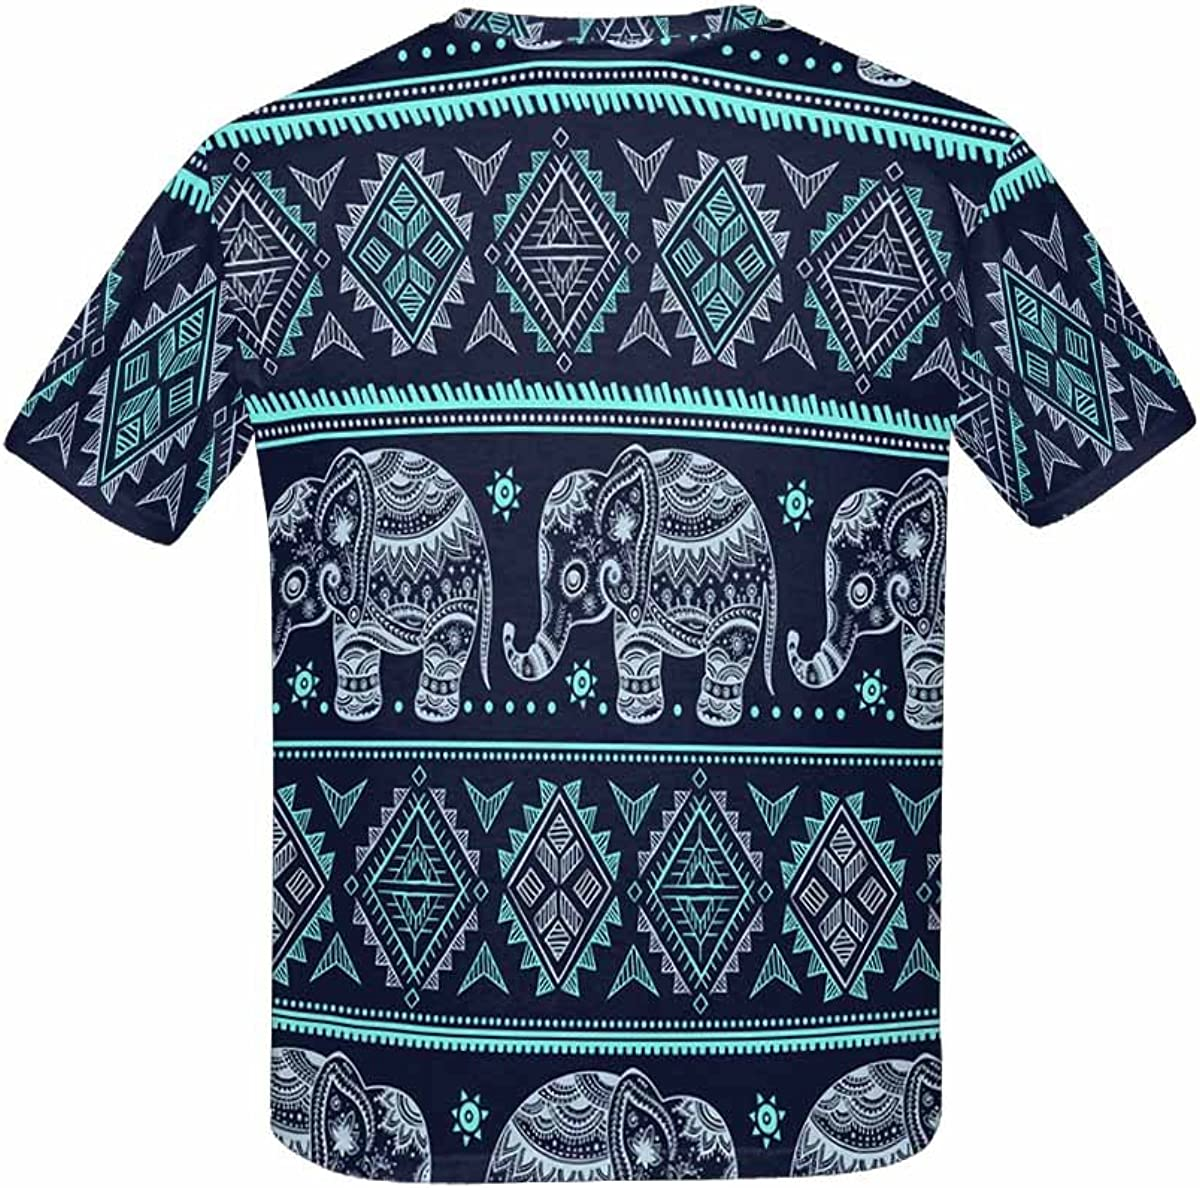 XS-XL INTERESTPRINT Ethnic Vintage Elephant Childs T-Shirt